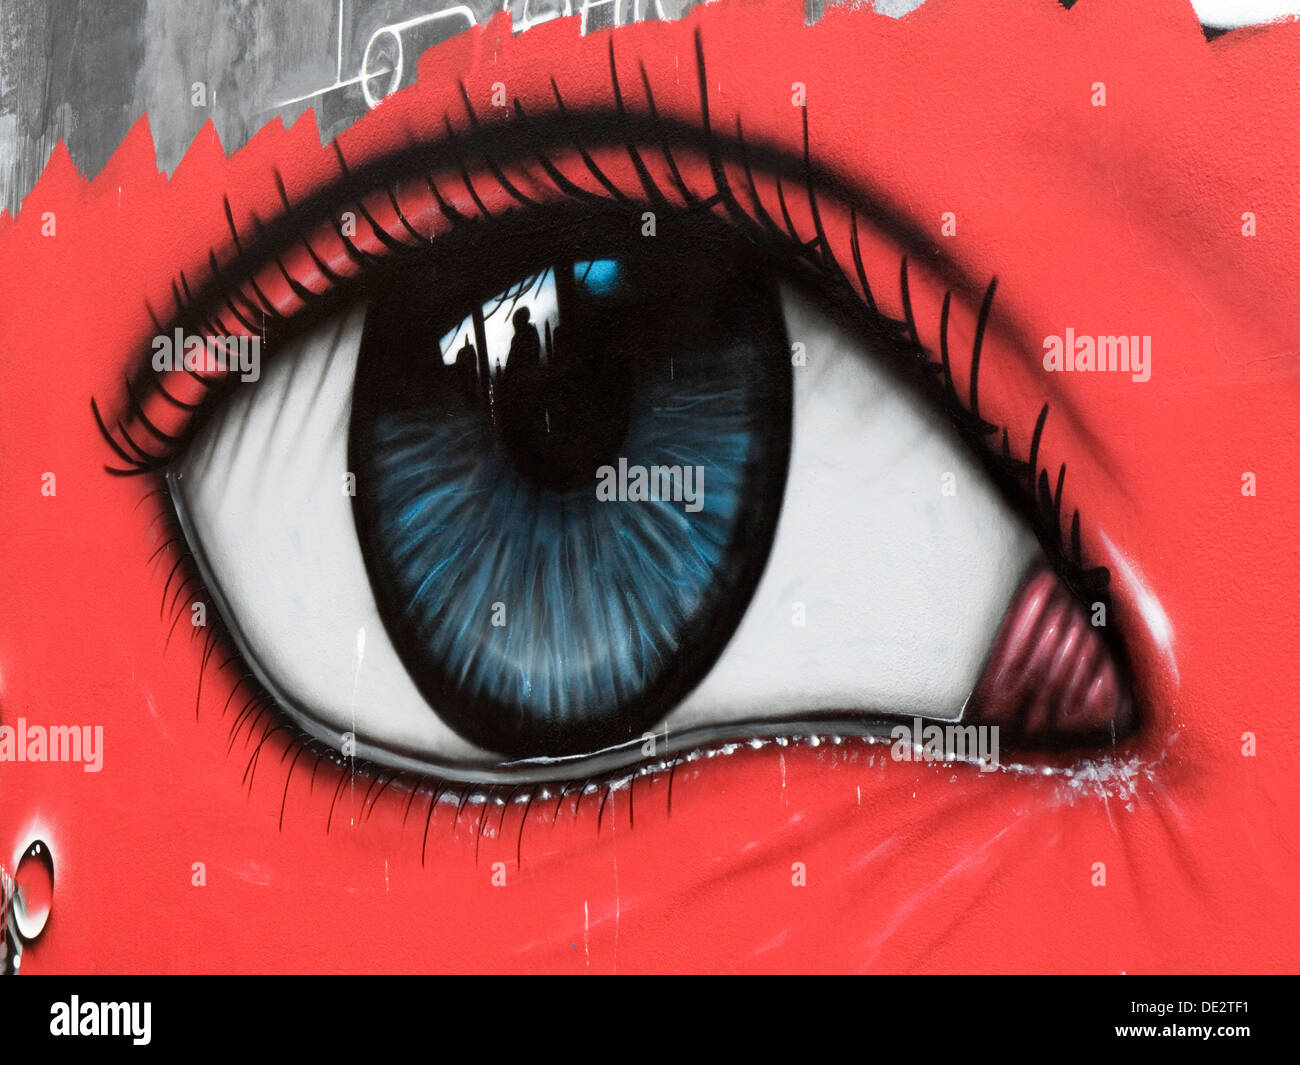 large artwork of an eye painted onto an outside wall southsea england uk - Stock Image